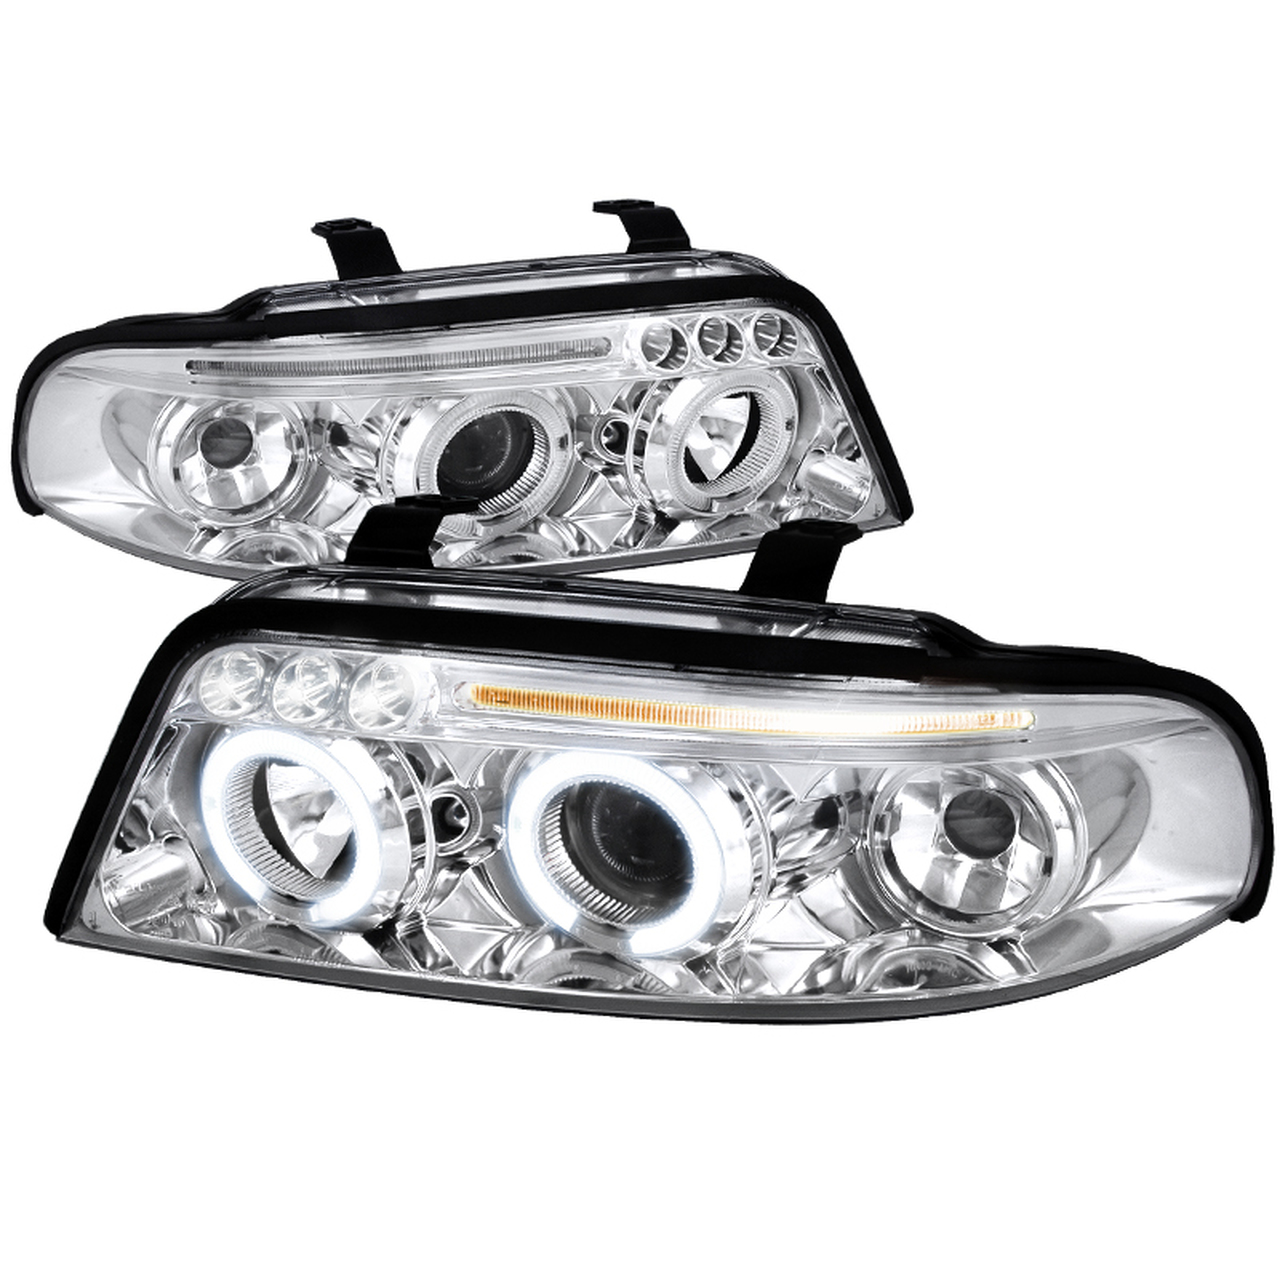 Spec-D Tuning Chrome Halo LED Projector Headlights - Spec-D Tuning LHP-A400-TM